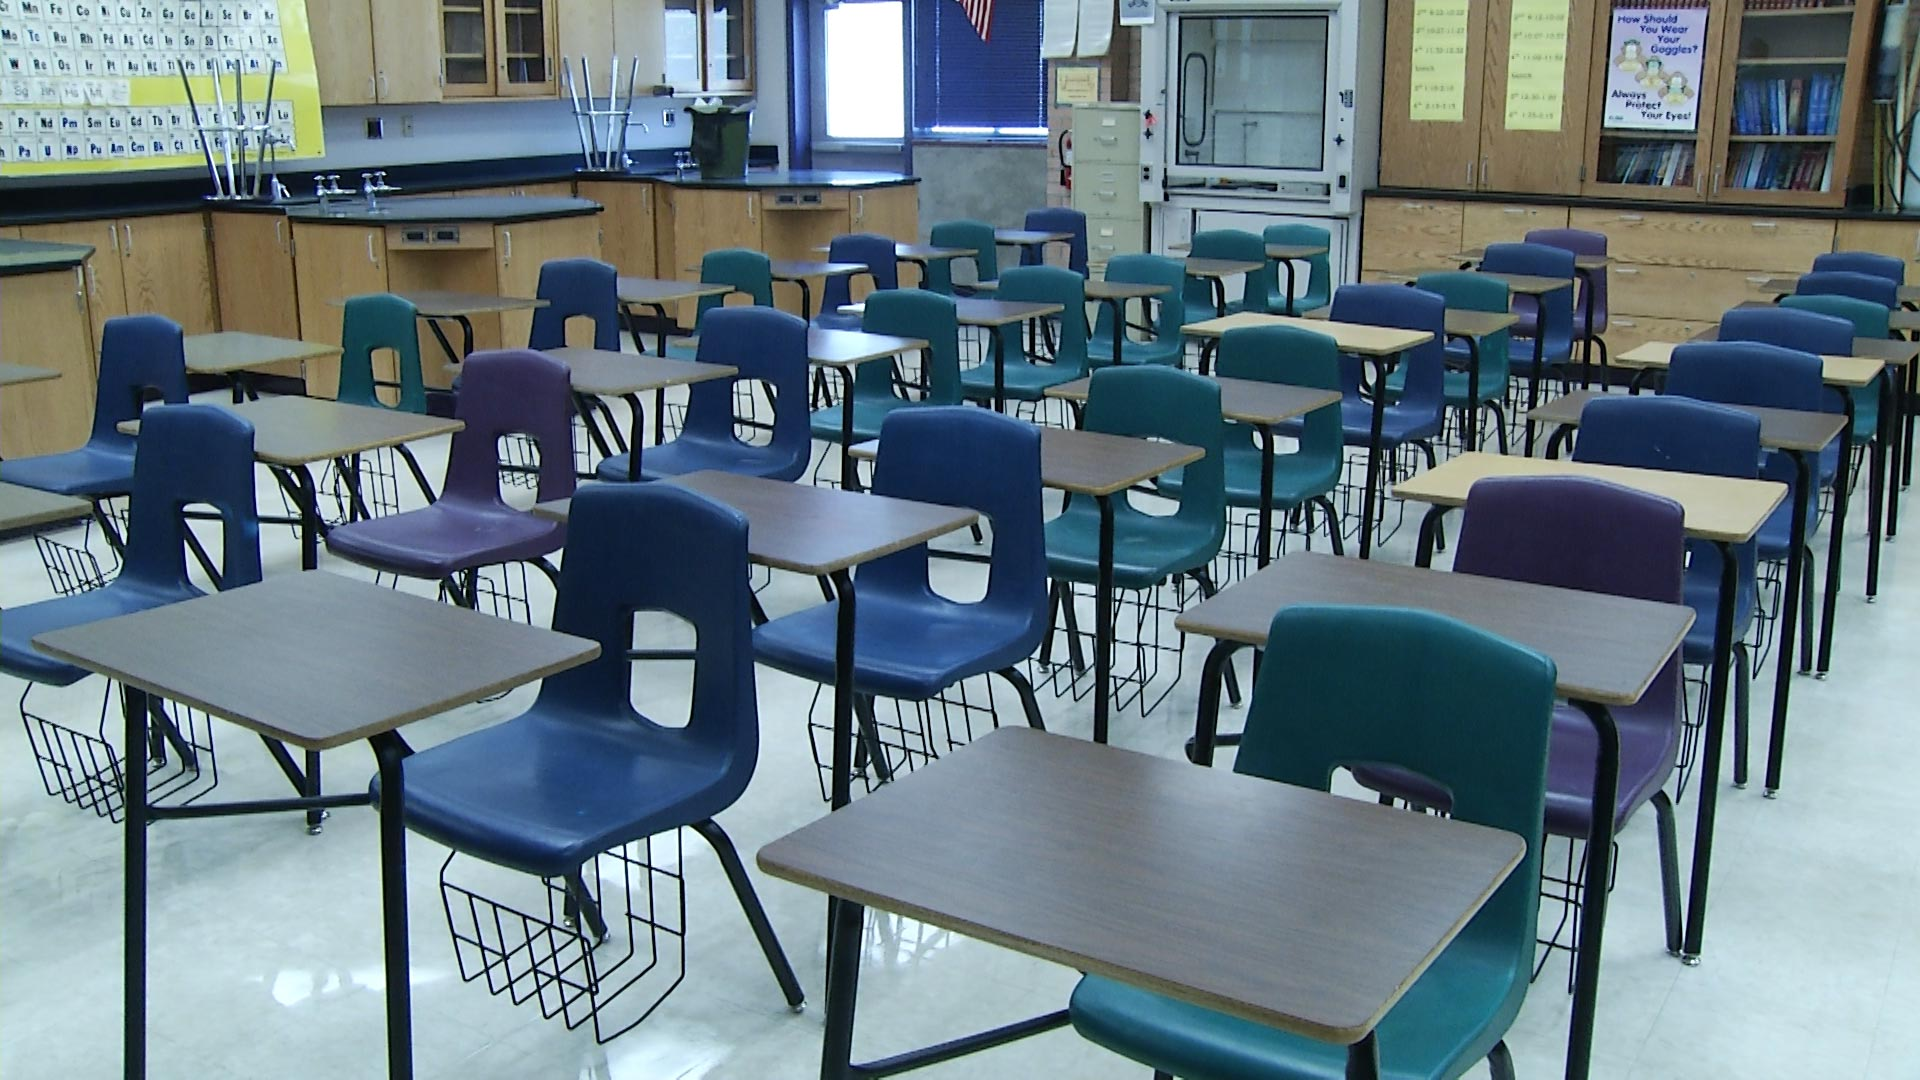 Empty classroom full of chairs in Arizona